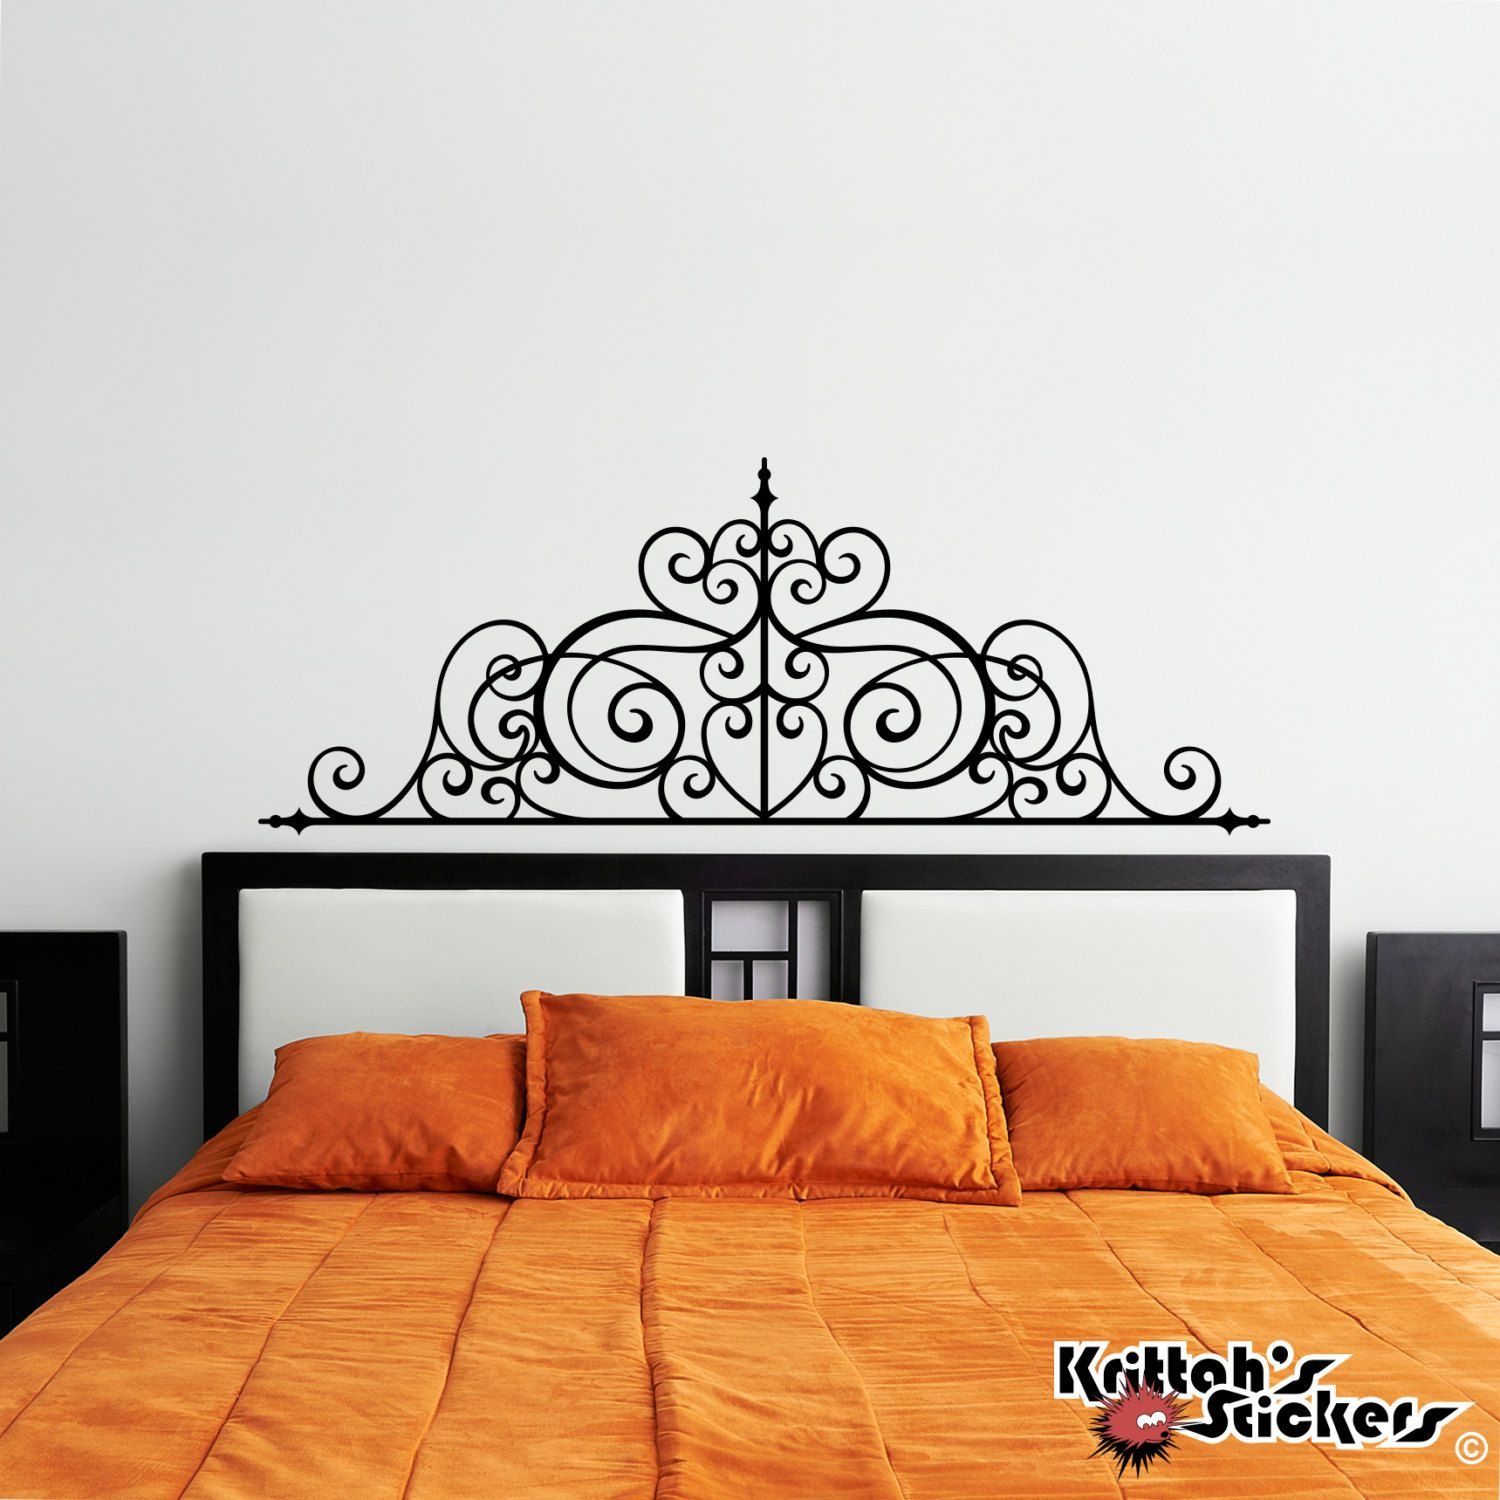 decorations doherty king iron headboards jyugon headboard throughout house vintage wrought info